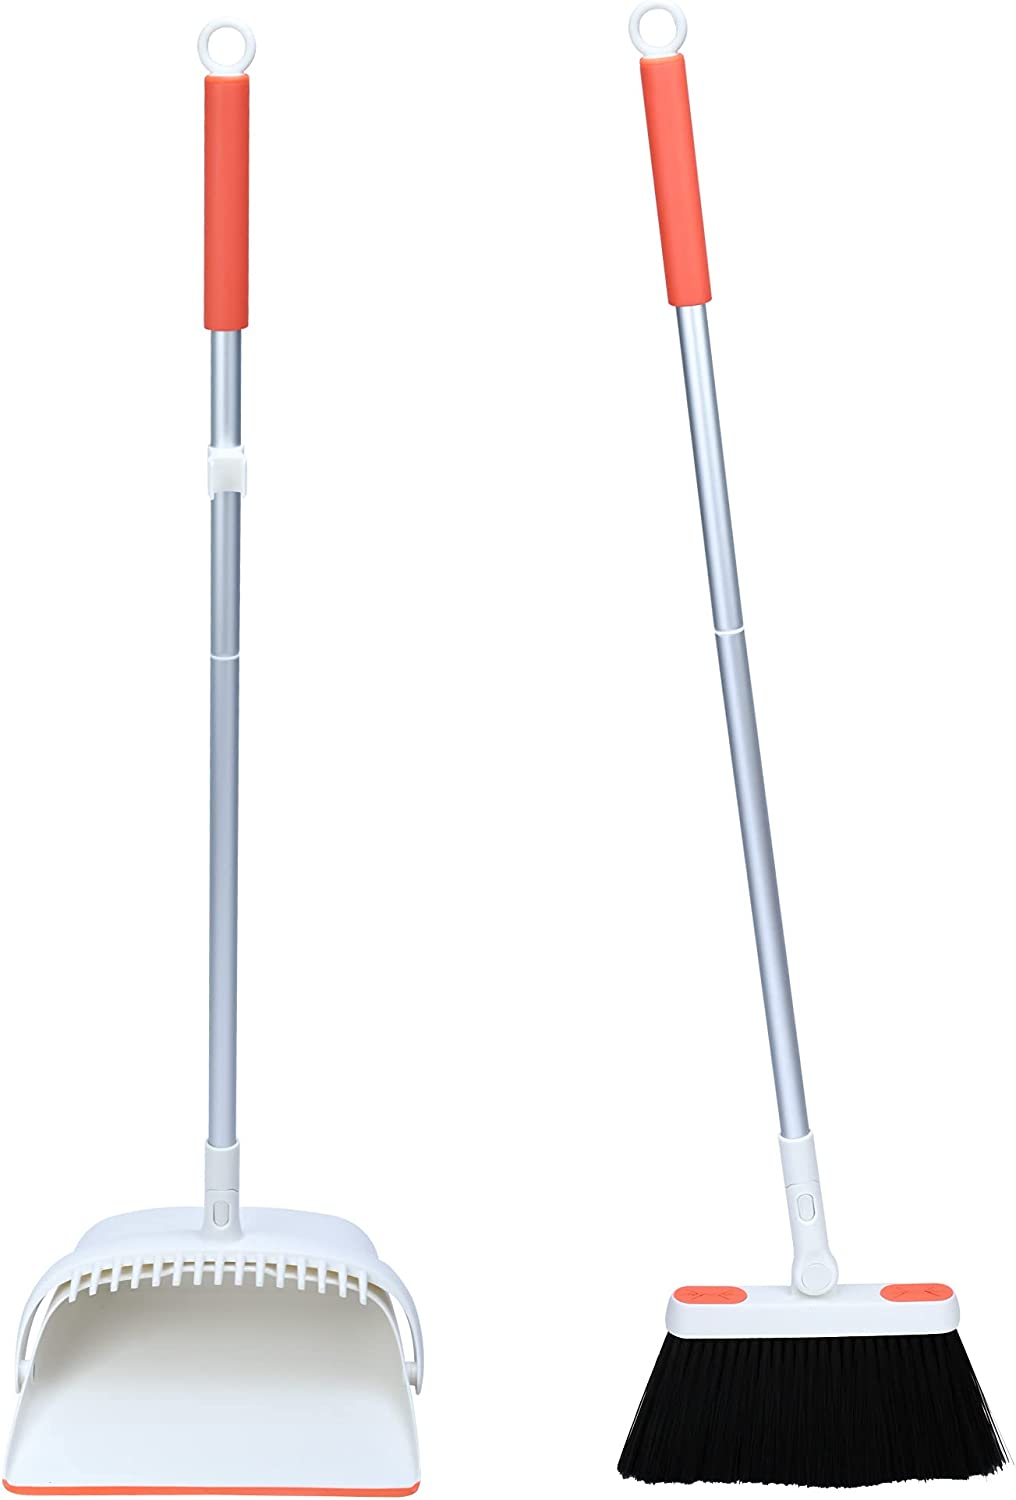 Broom and Dustpan Set with Built-in Comb, 2021 Upgraded Design, Added Mopping Cloth Feature, Lightweight and Durable with Adjustable Handle Length and Rotatable Head, for Home Kitchen Office Garage